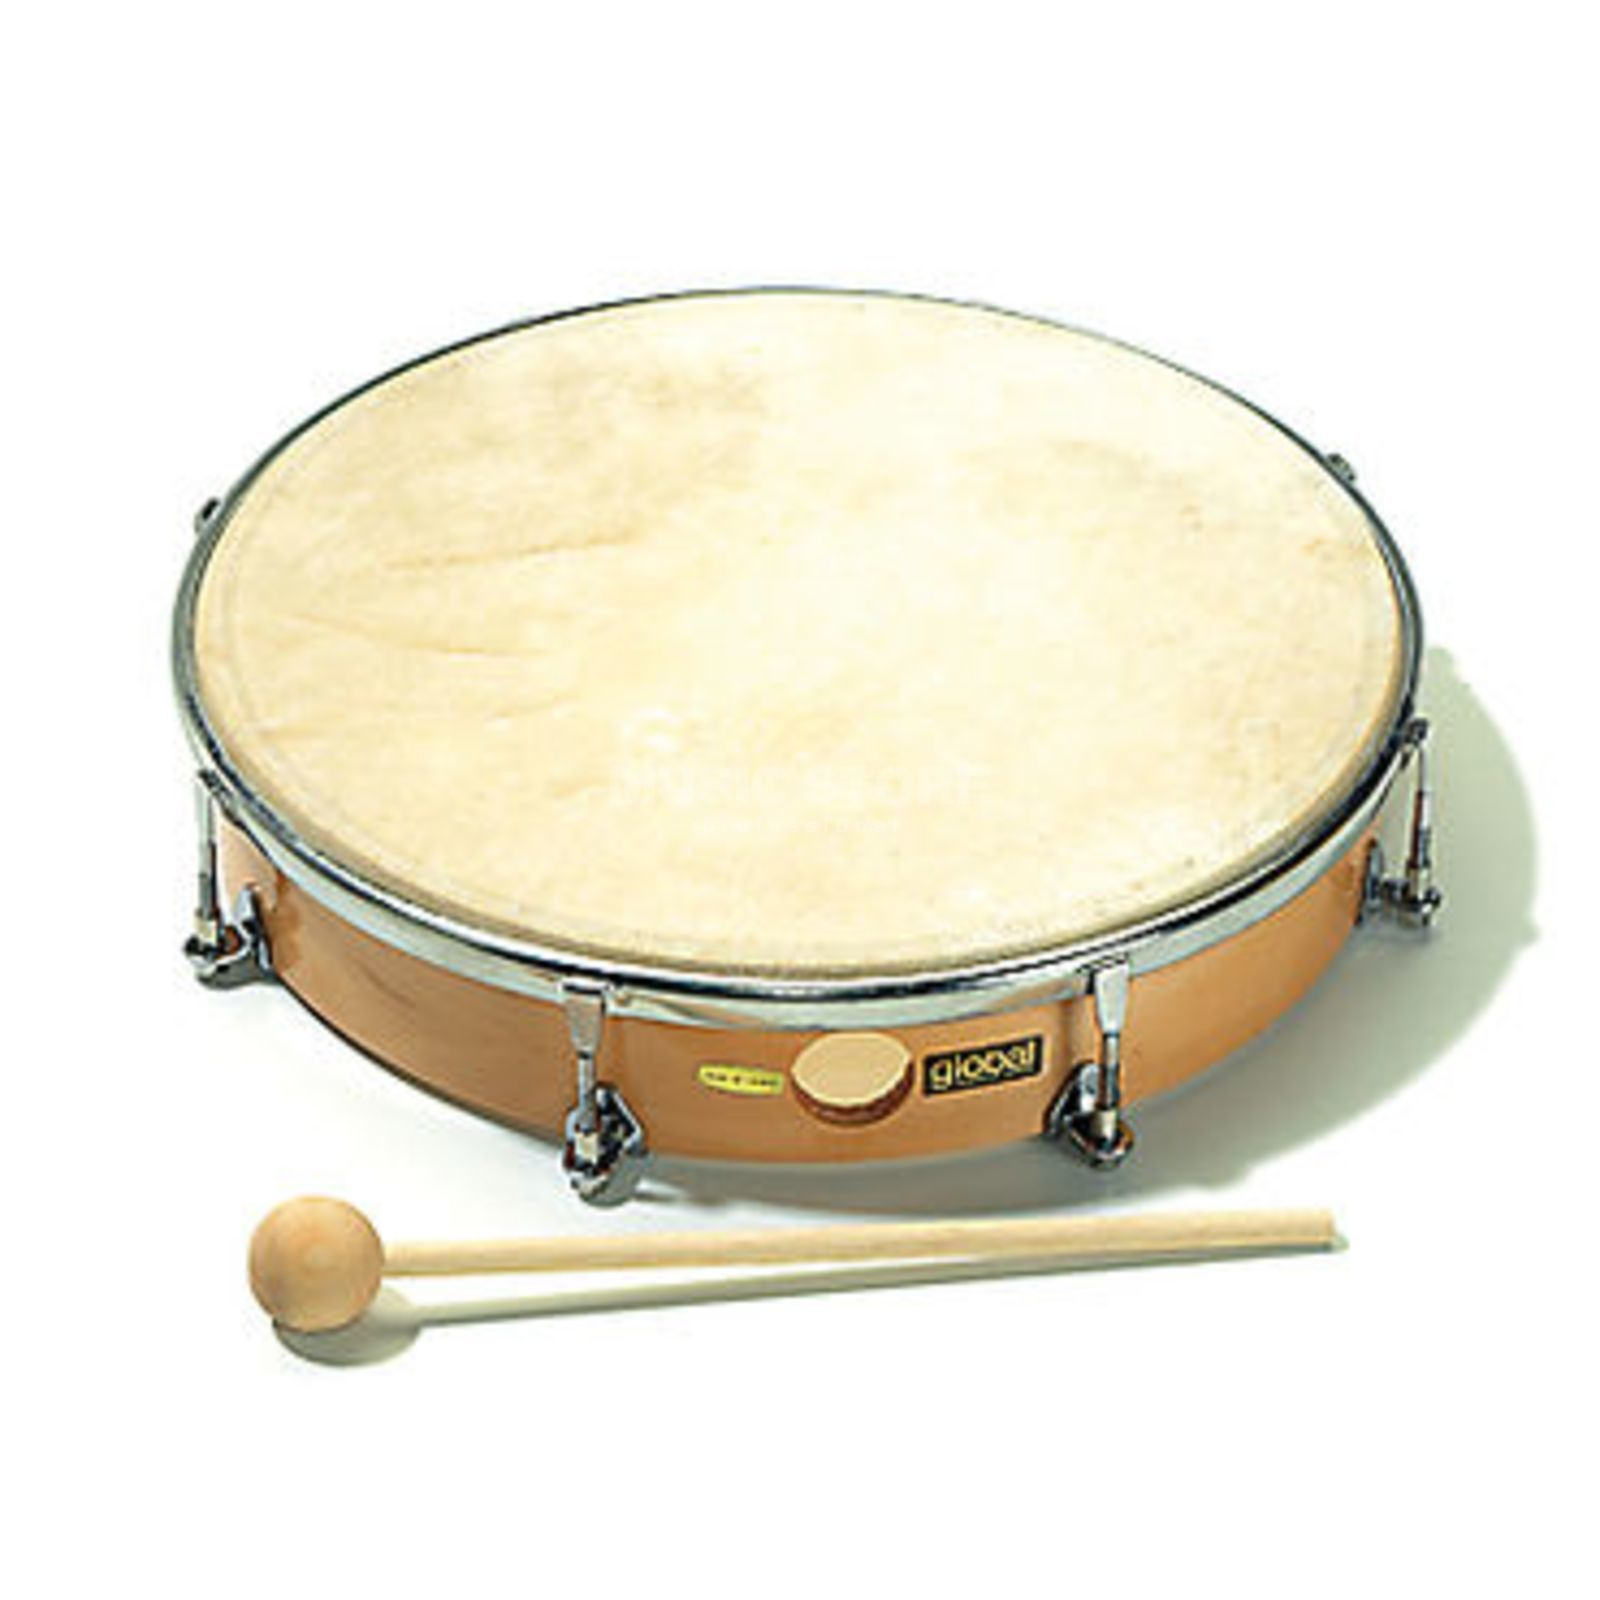 "Sonor Hand Drum CG THD 8 N, 8"", Natural head Produktbillede"